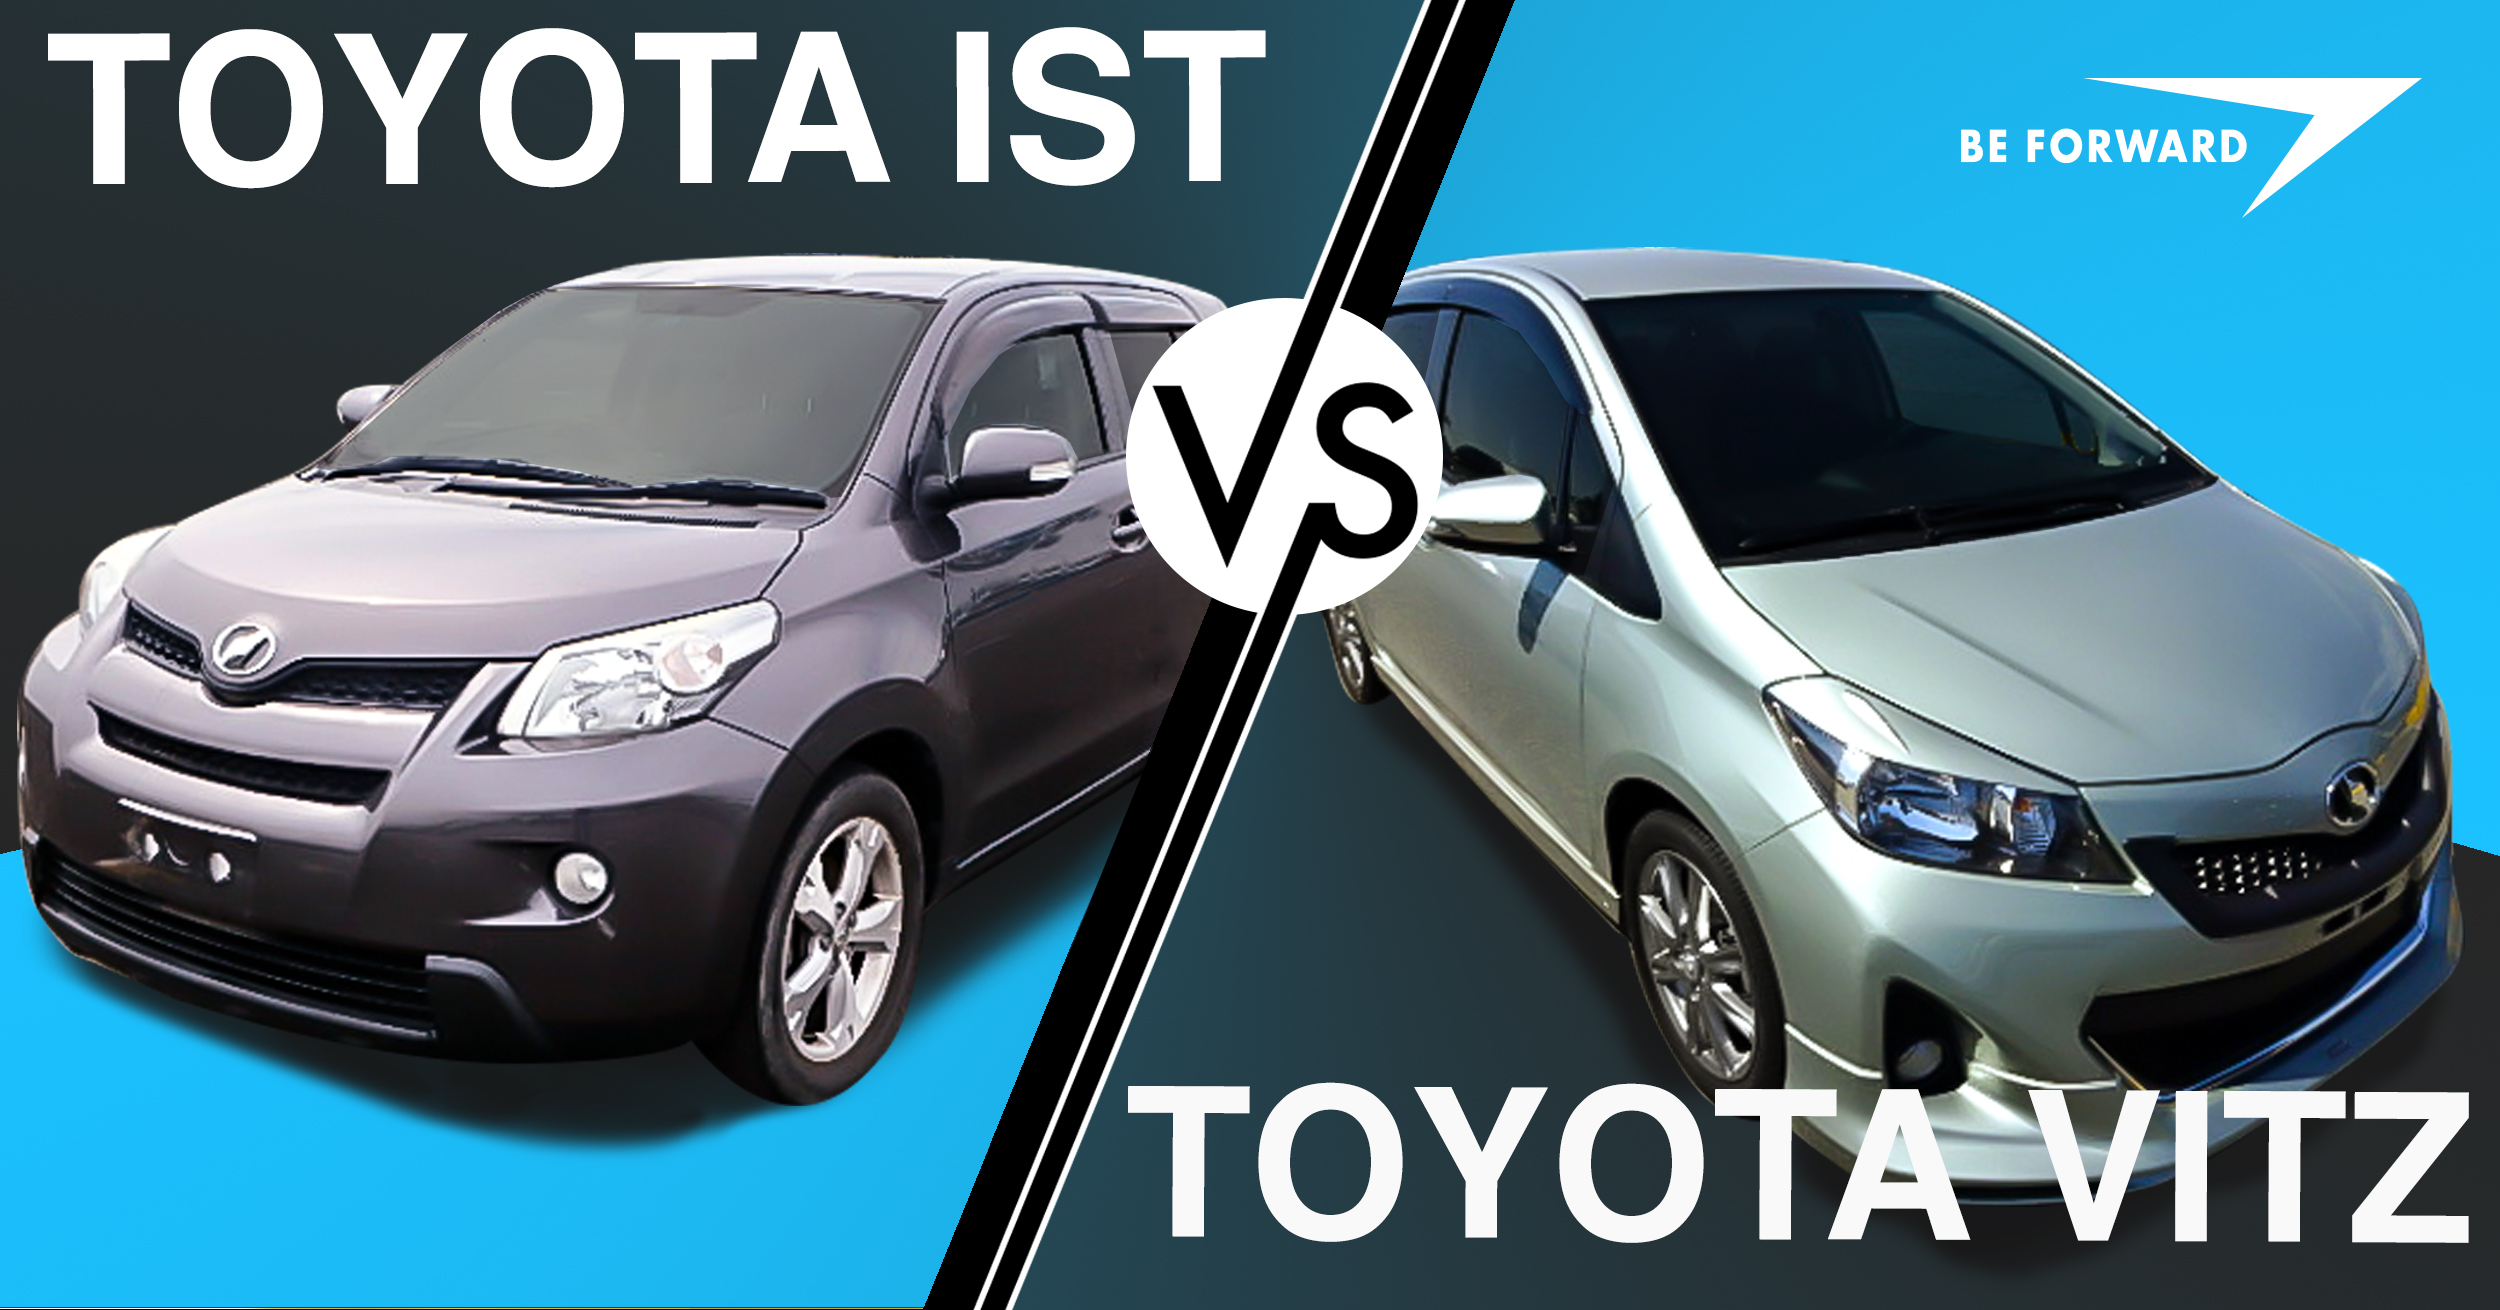 Toyota IST vs. Toyota Vitz – Subcompact Hatchback Comparison